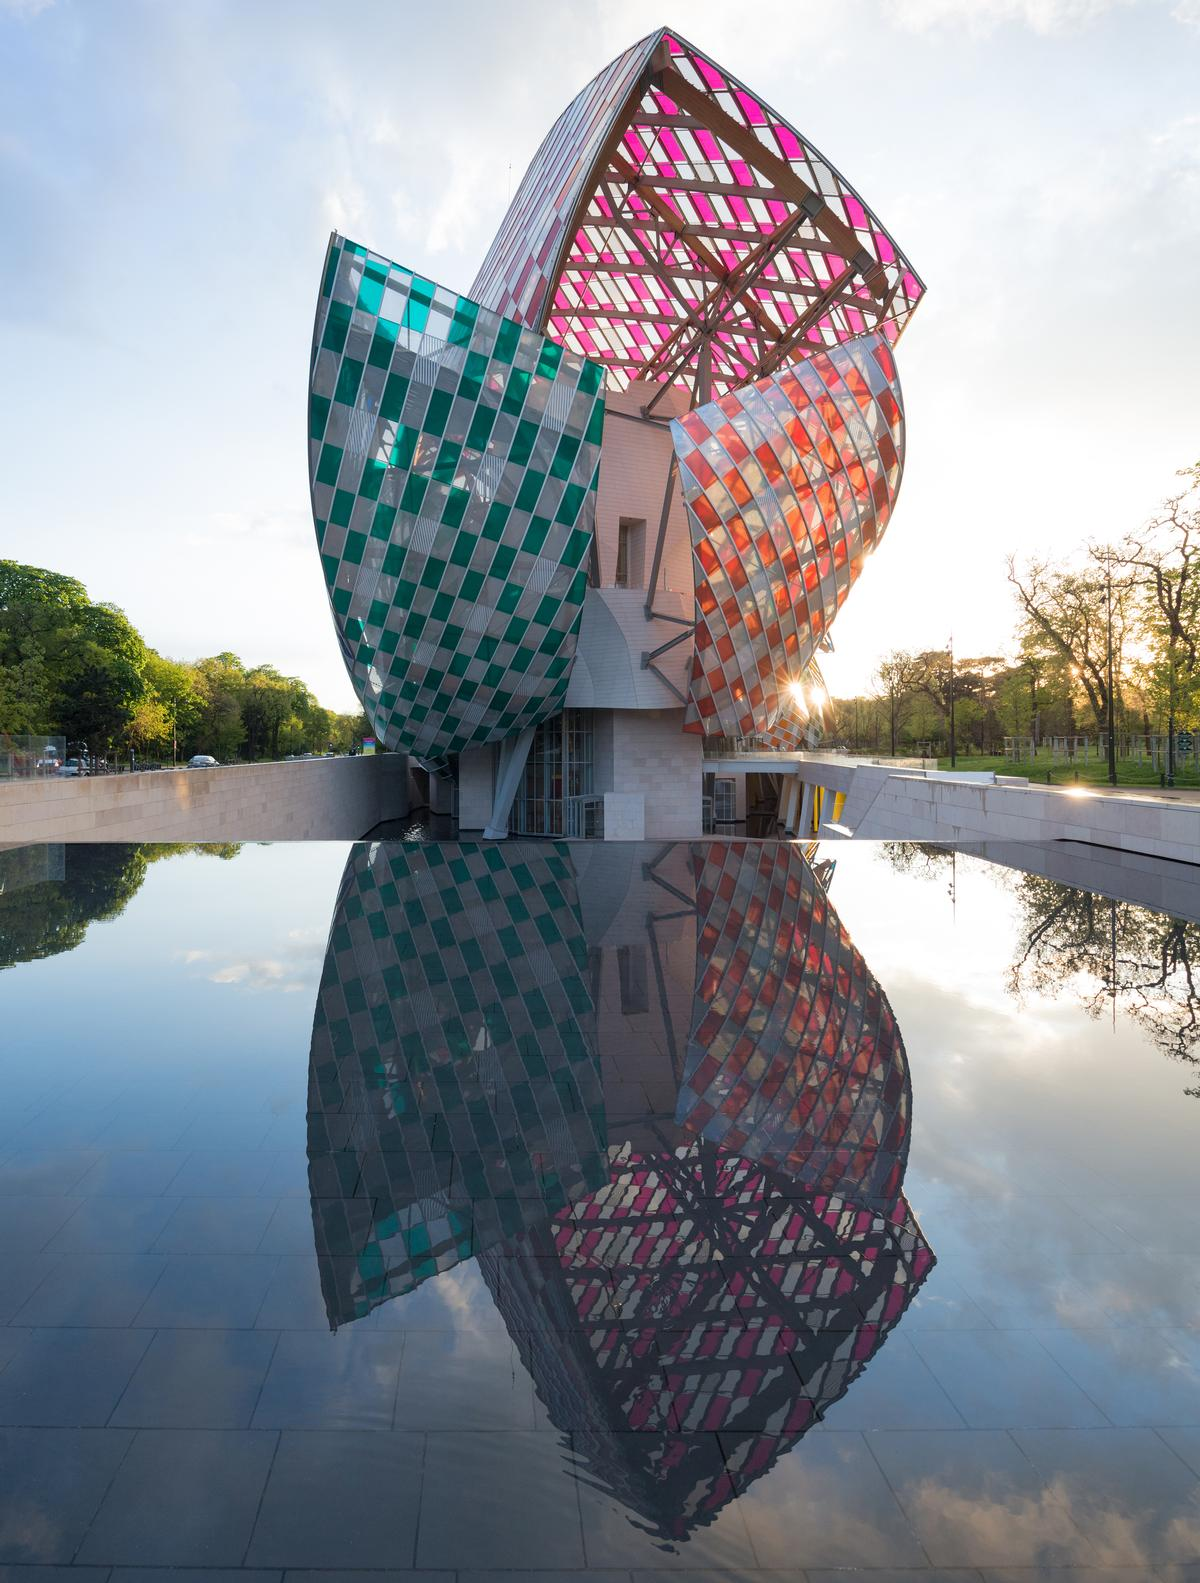 The building won the Best Architecture & Spatial Design Award at the 2015 Leading Culture Destinations Awards / Iwan Baan / Fondation Louis Vuitton